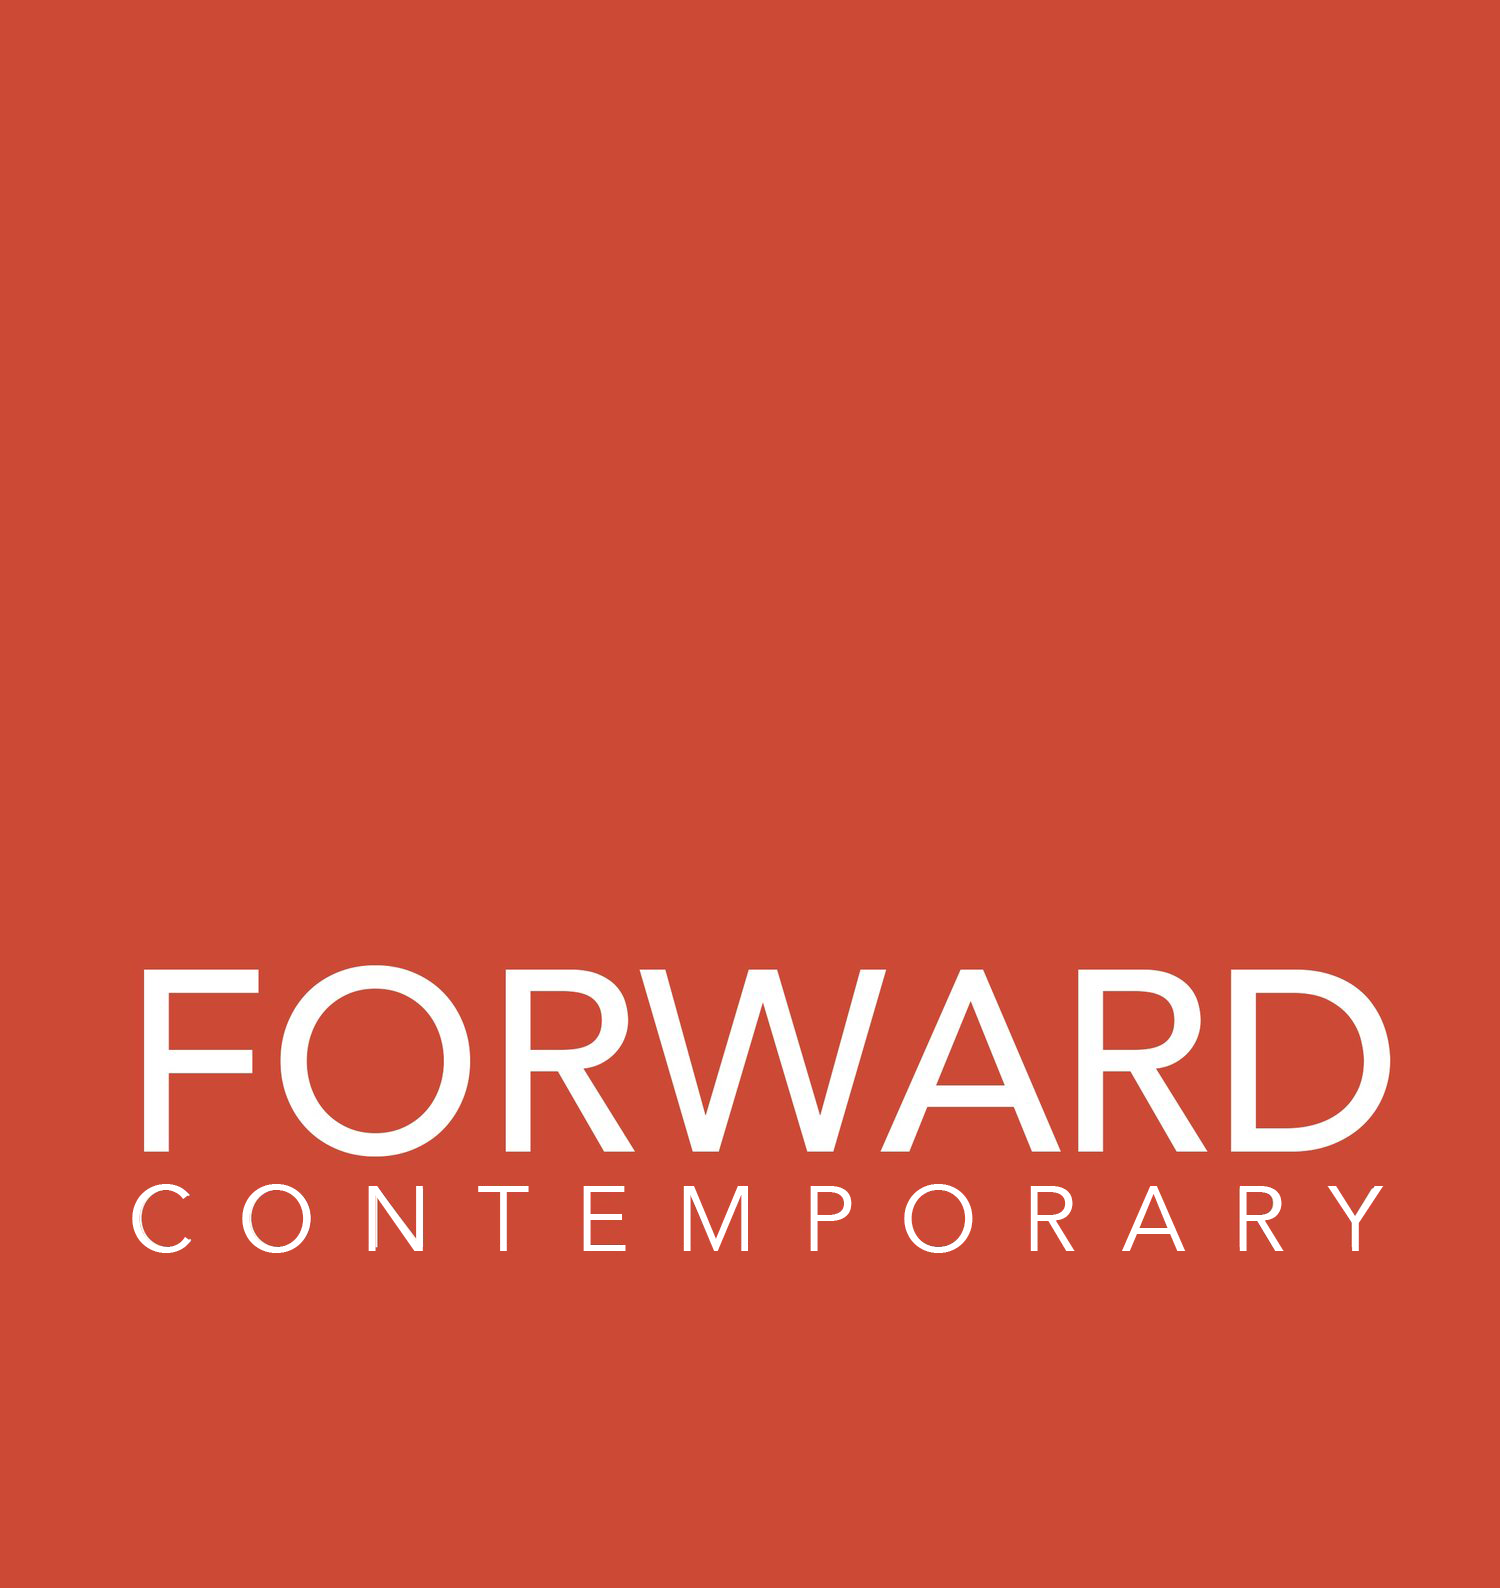 Forward Contemporary Logo.png